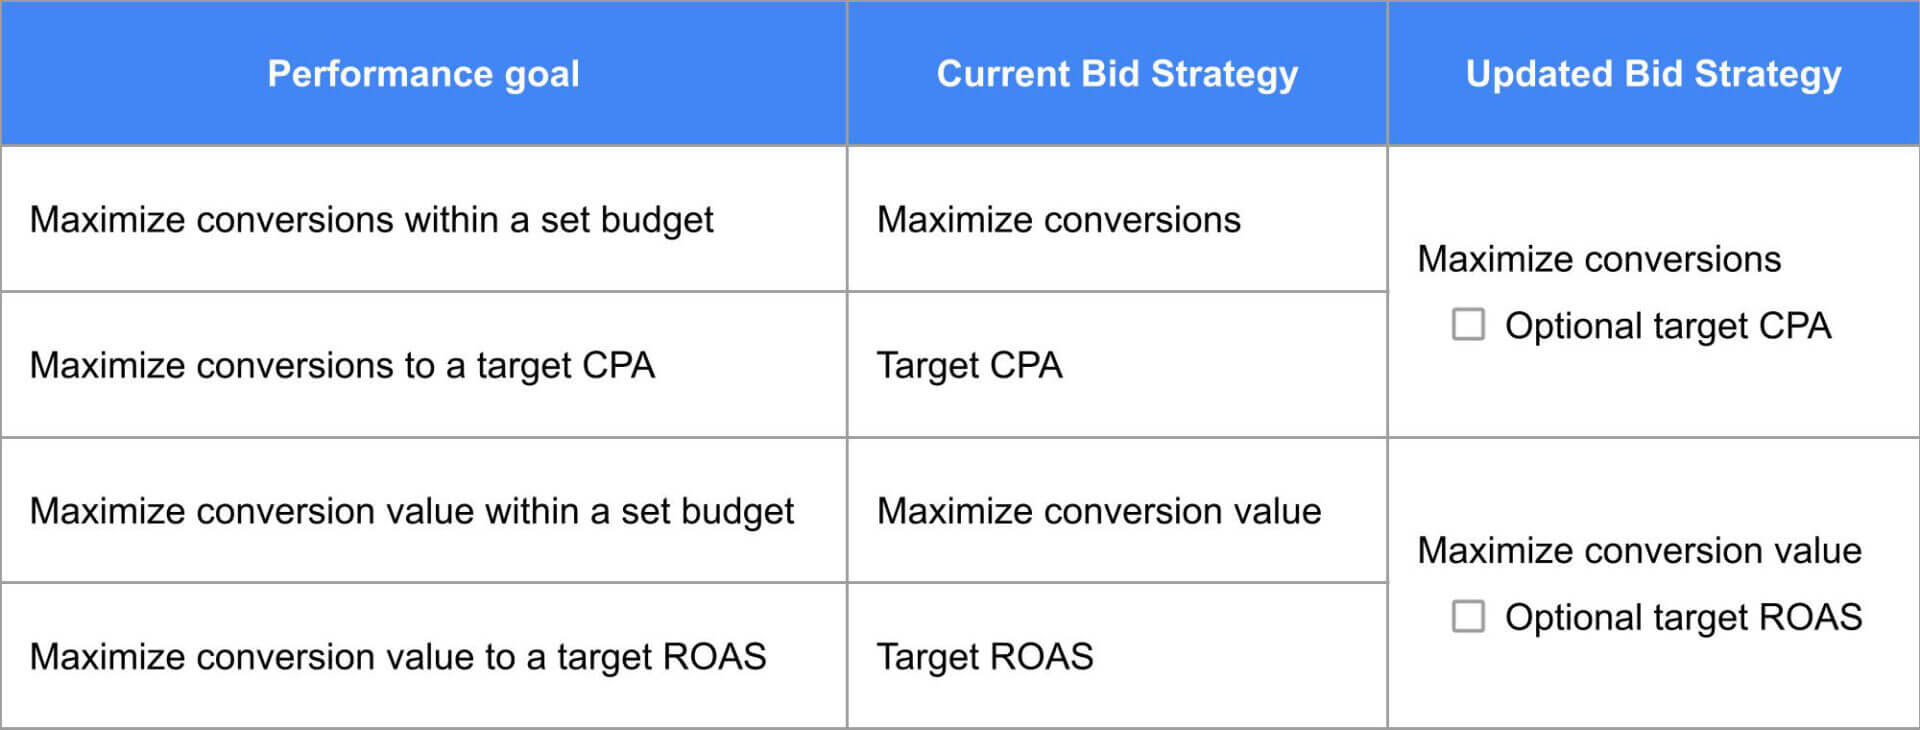 New Target CPA and Target ROAS Bidding Strategies Setting Update, Source: Google | DEANLONG.io